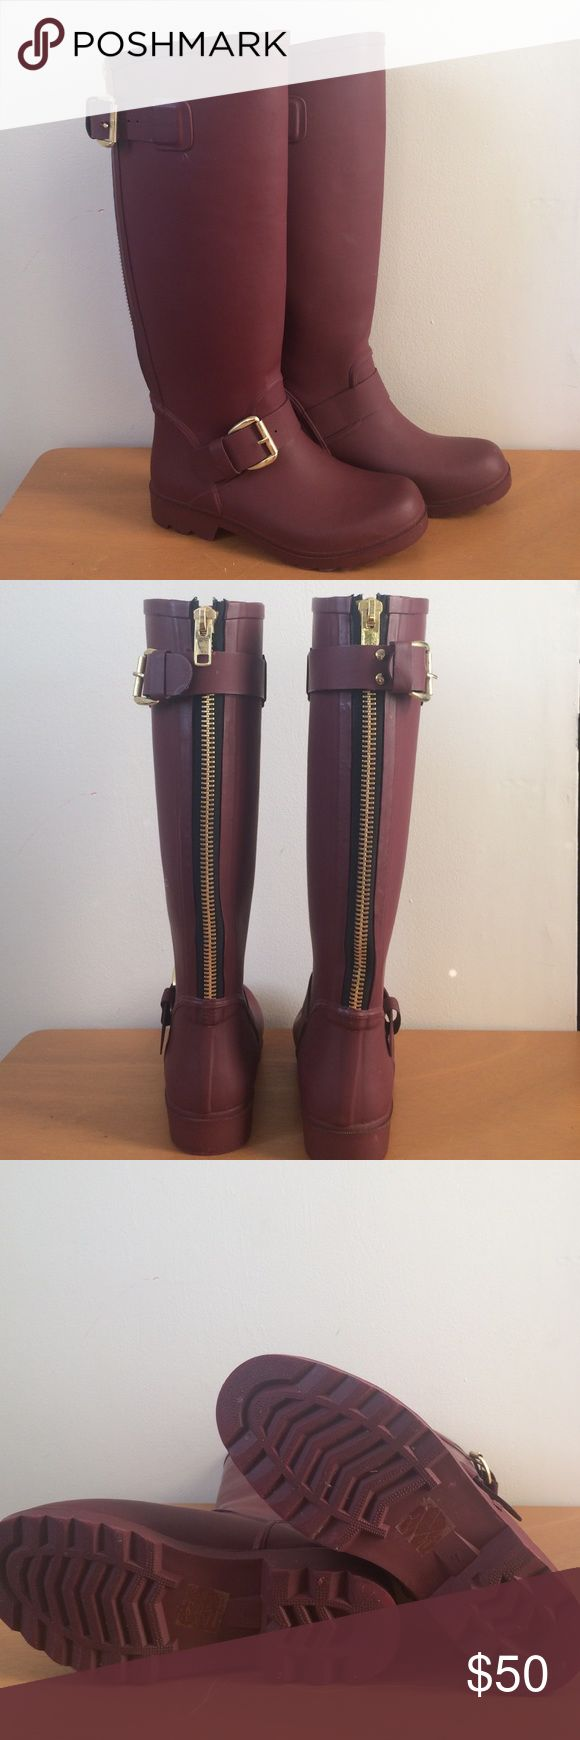 Steve Madden Rain Boots Burgundy rain boots ... The right boot has a little scratch, other than that the boots are in excellent condition ! The price is negociable! Steve Madden Shoes Winter & Rain Boots